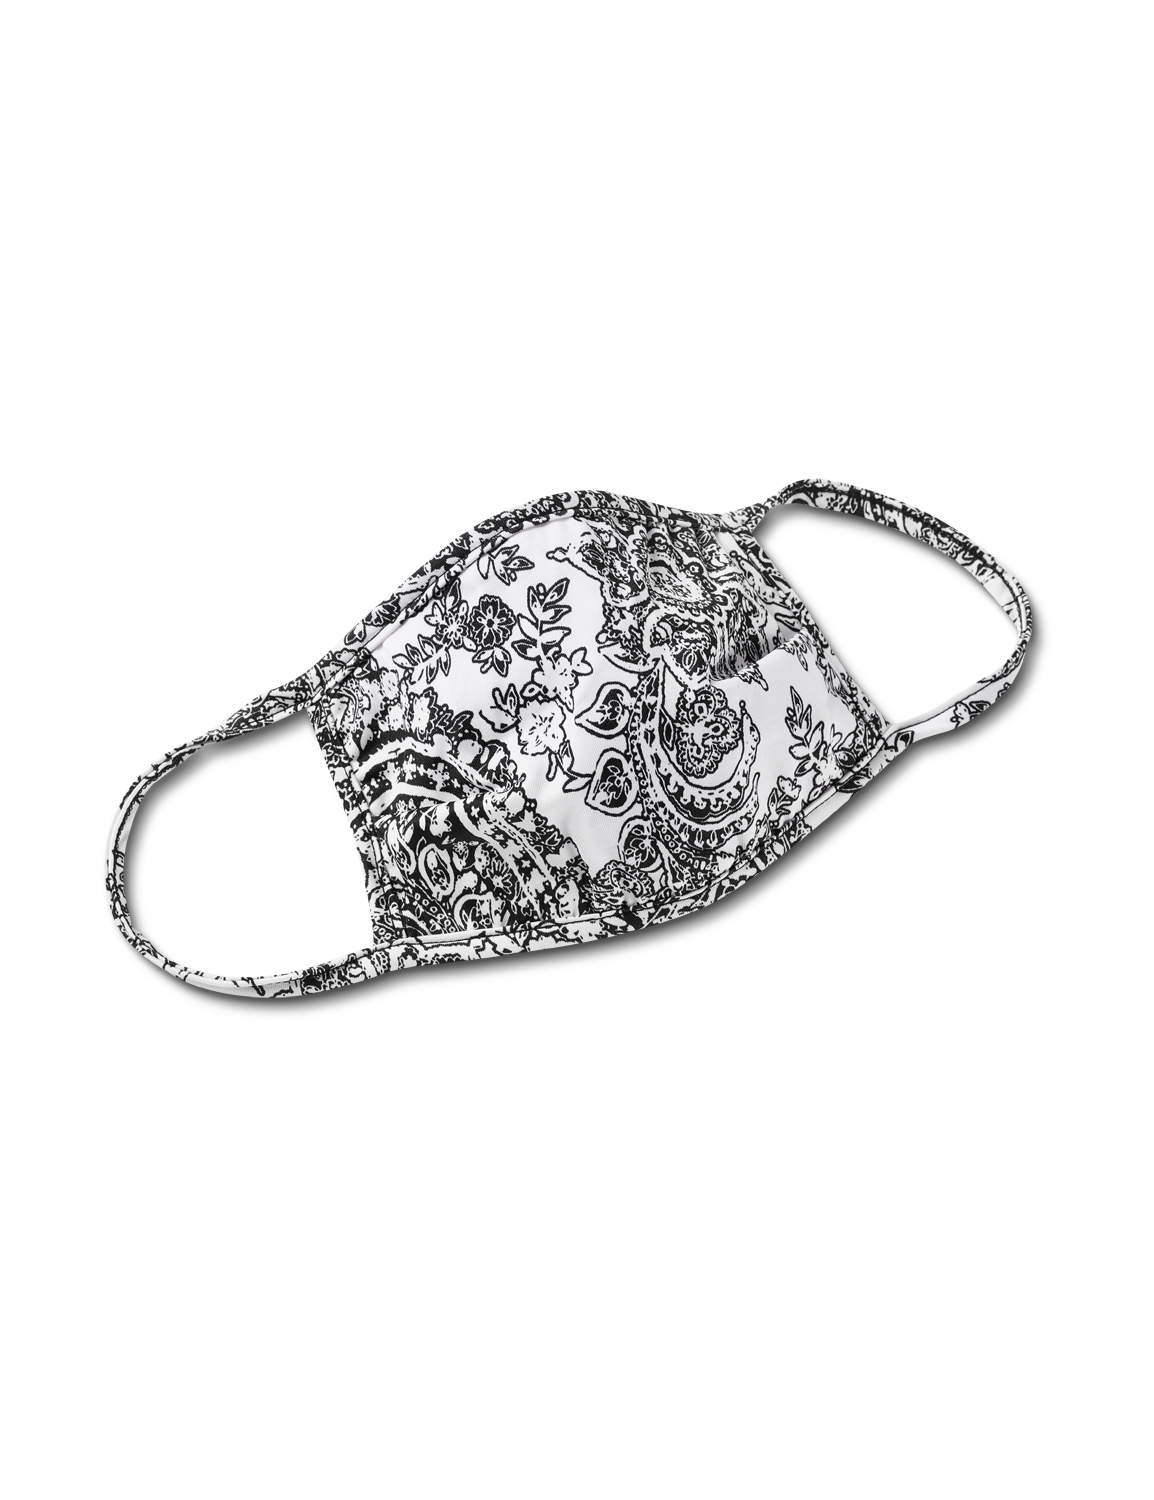 Etched Floral Fashion Mask - Black / White - Front